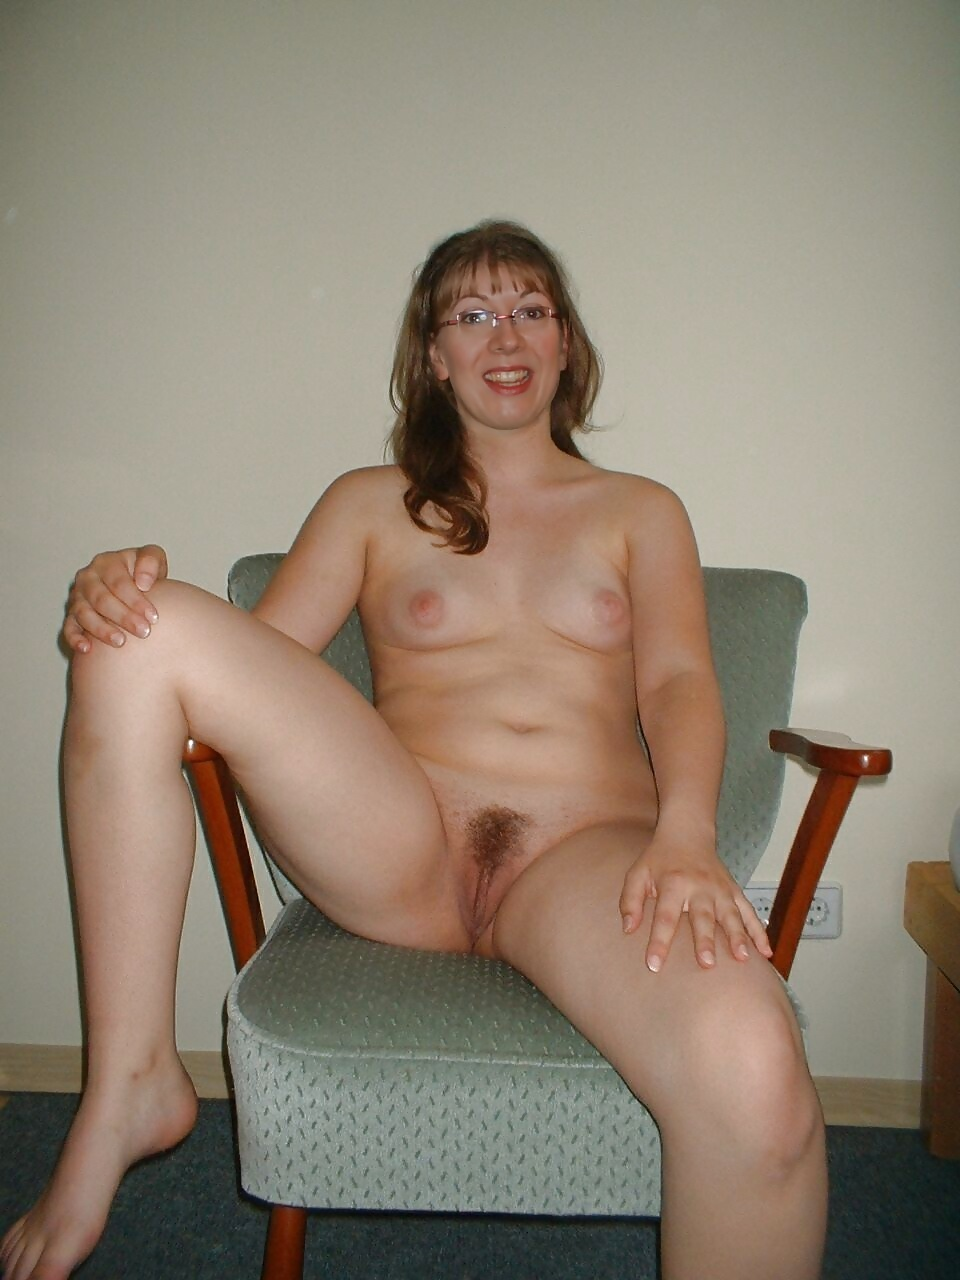 nude-mom-trimmed-pussy-naked-little-boys-having-sex